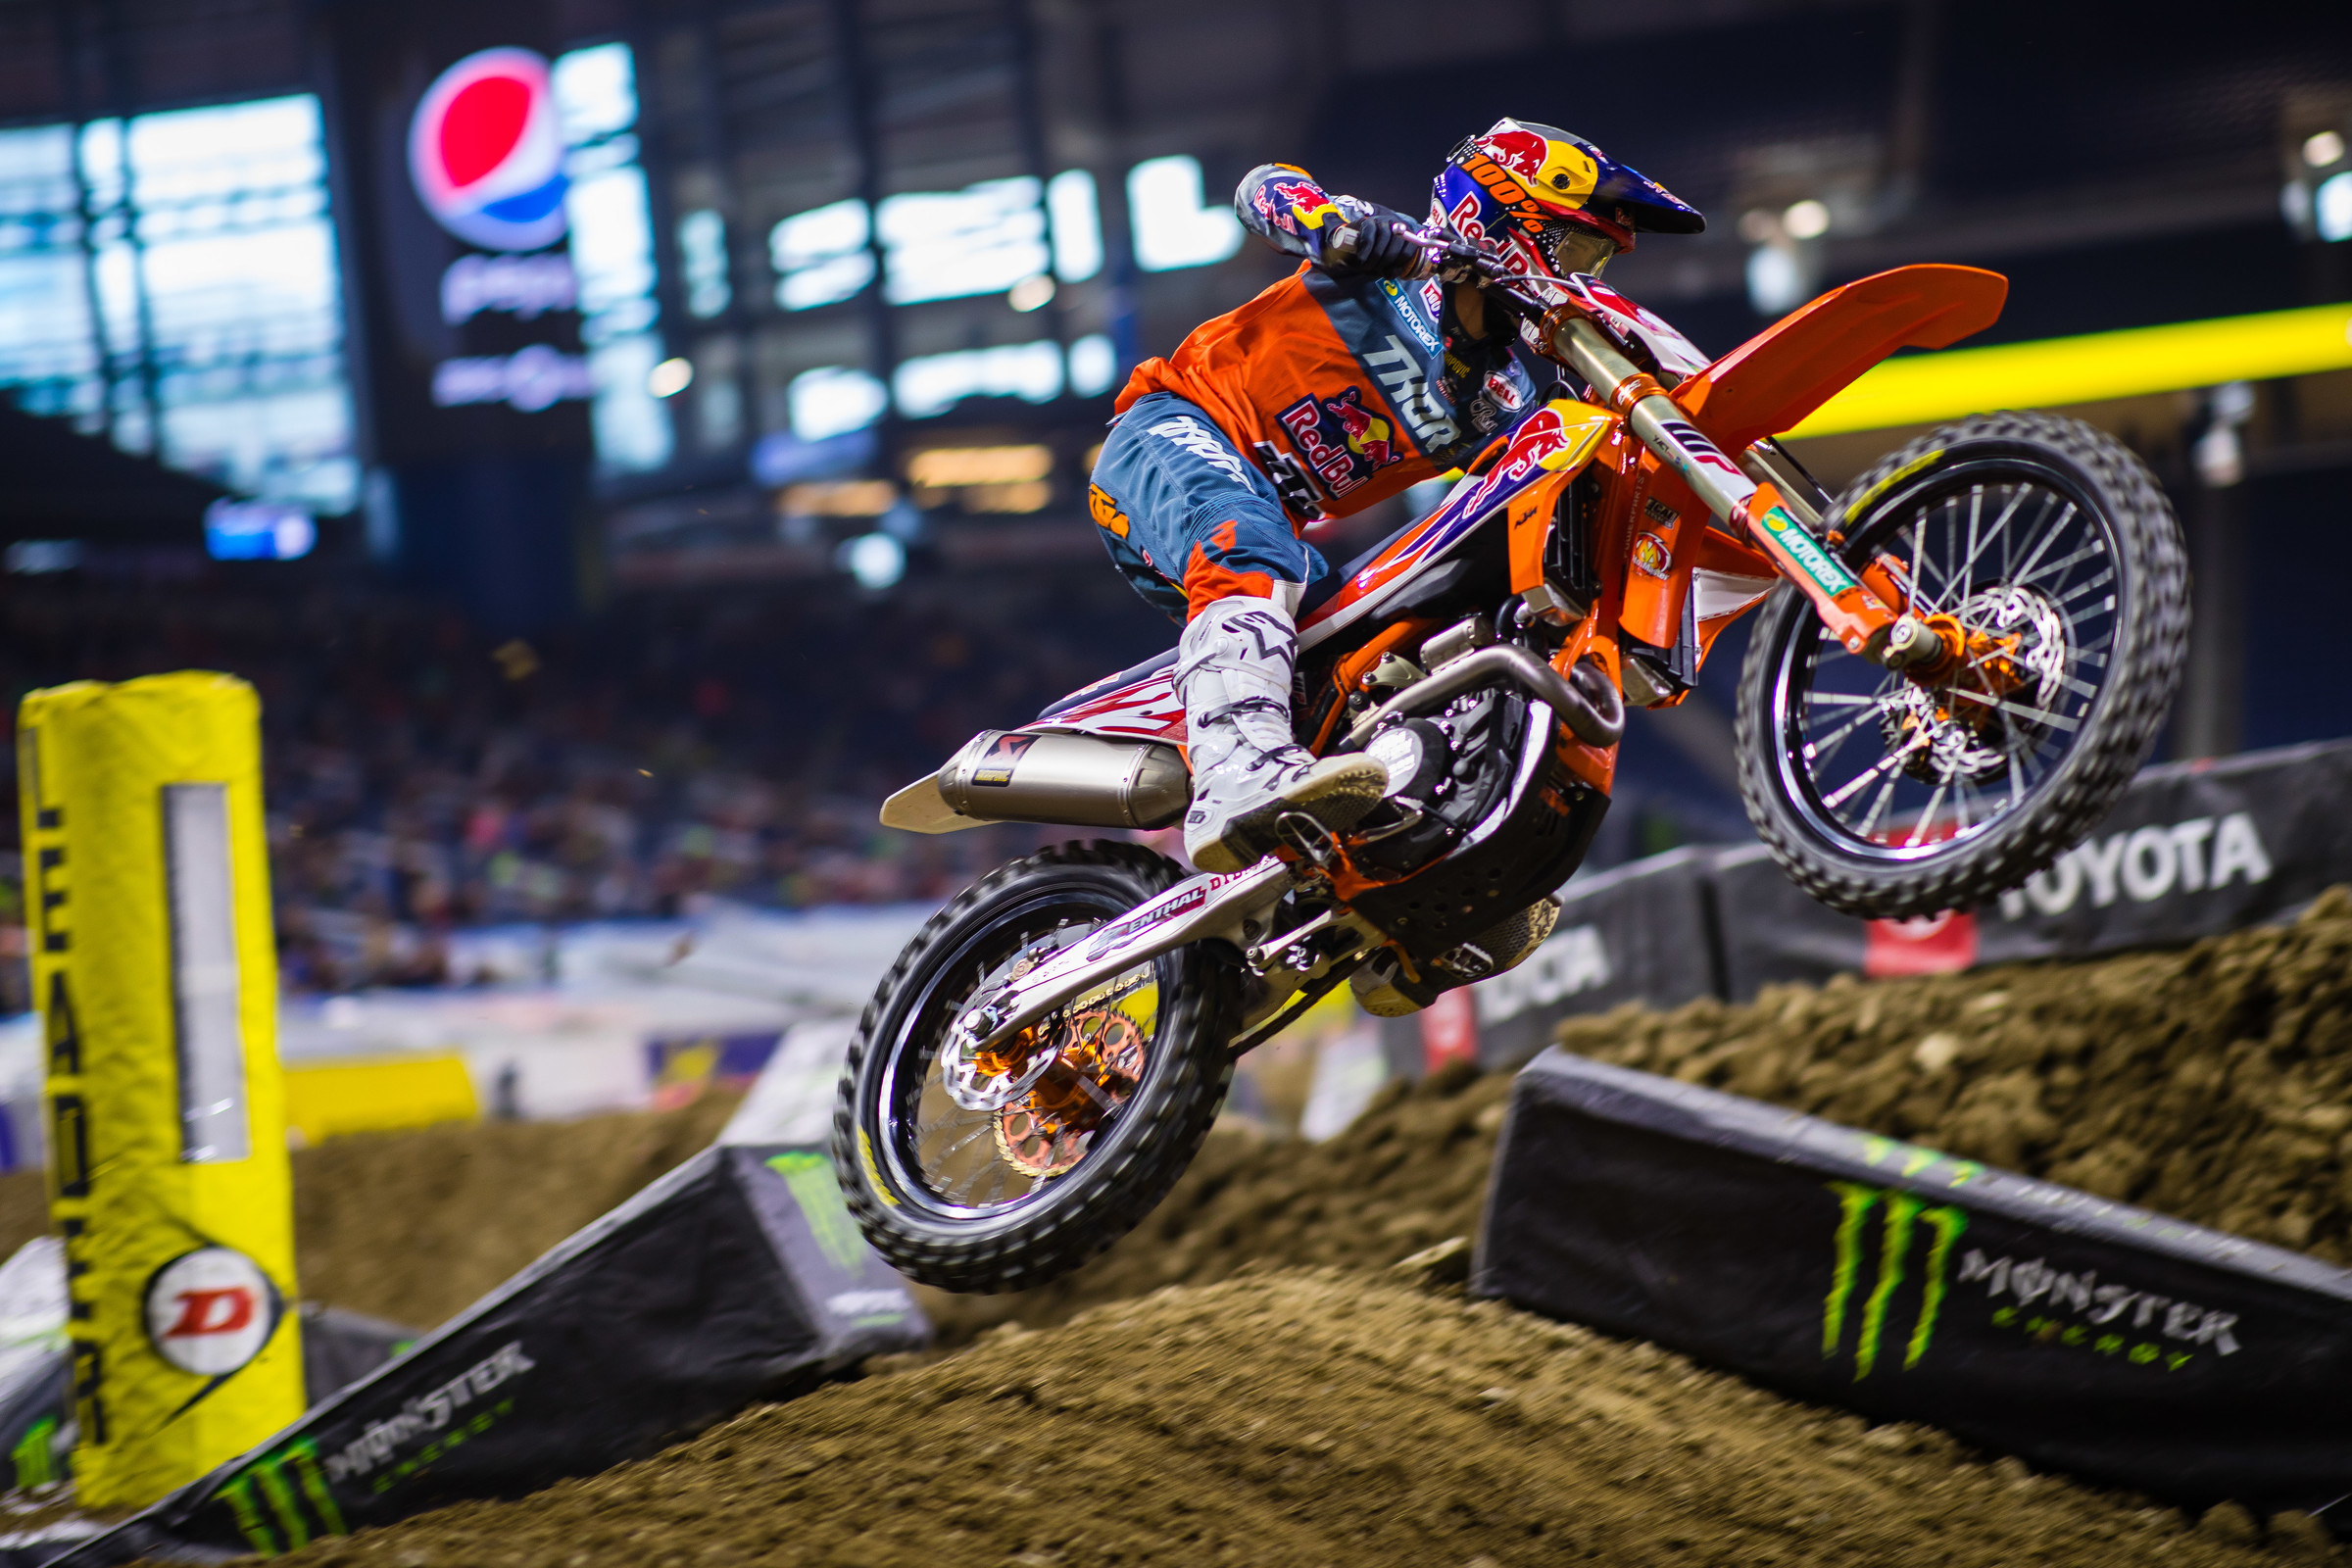 Cooper Webb got better as the night went on, going 6-2-1 on the night, but wasn't able to beat Tomac's 1-1-6.